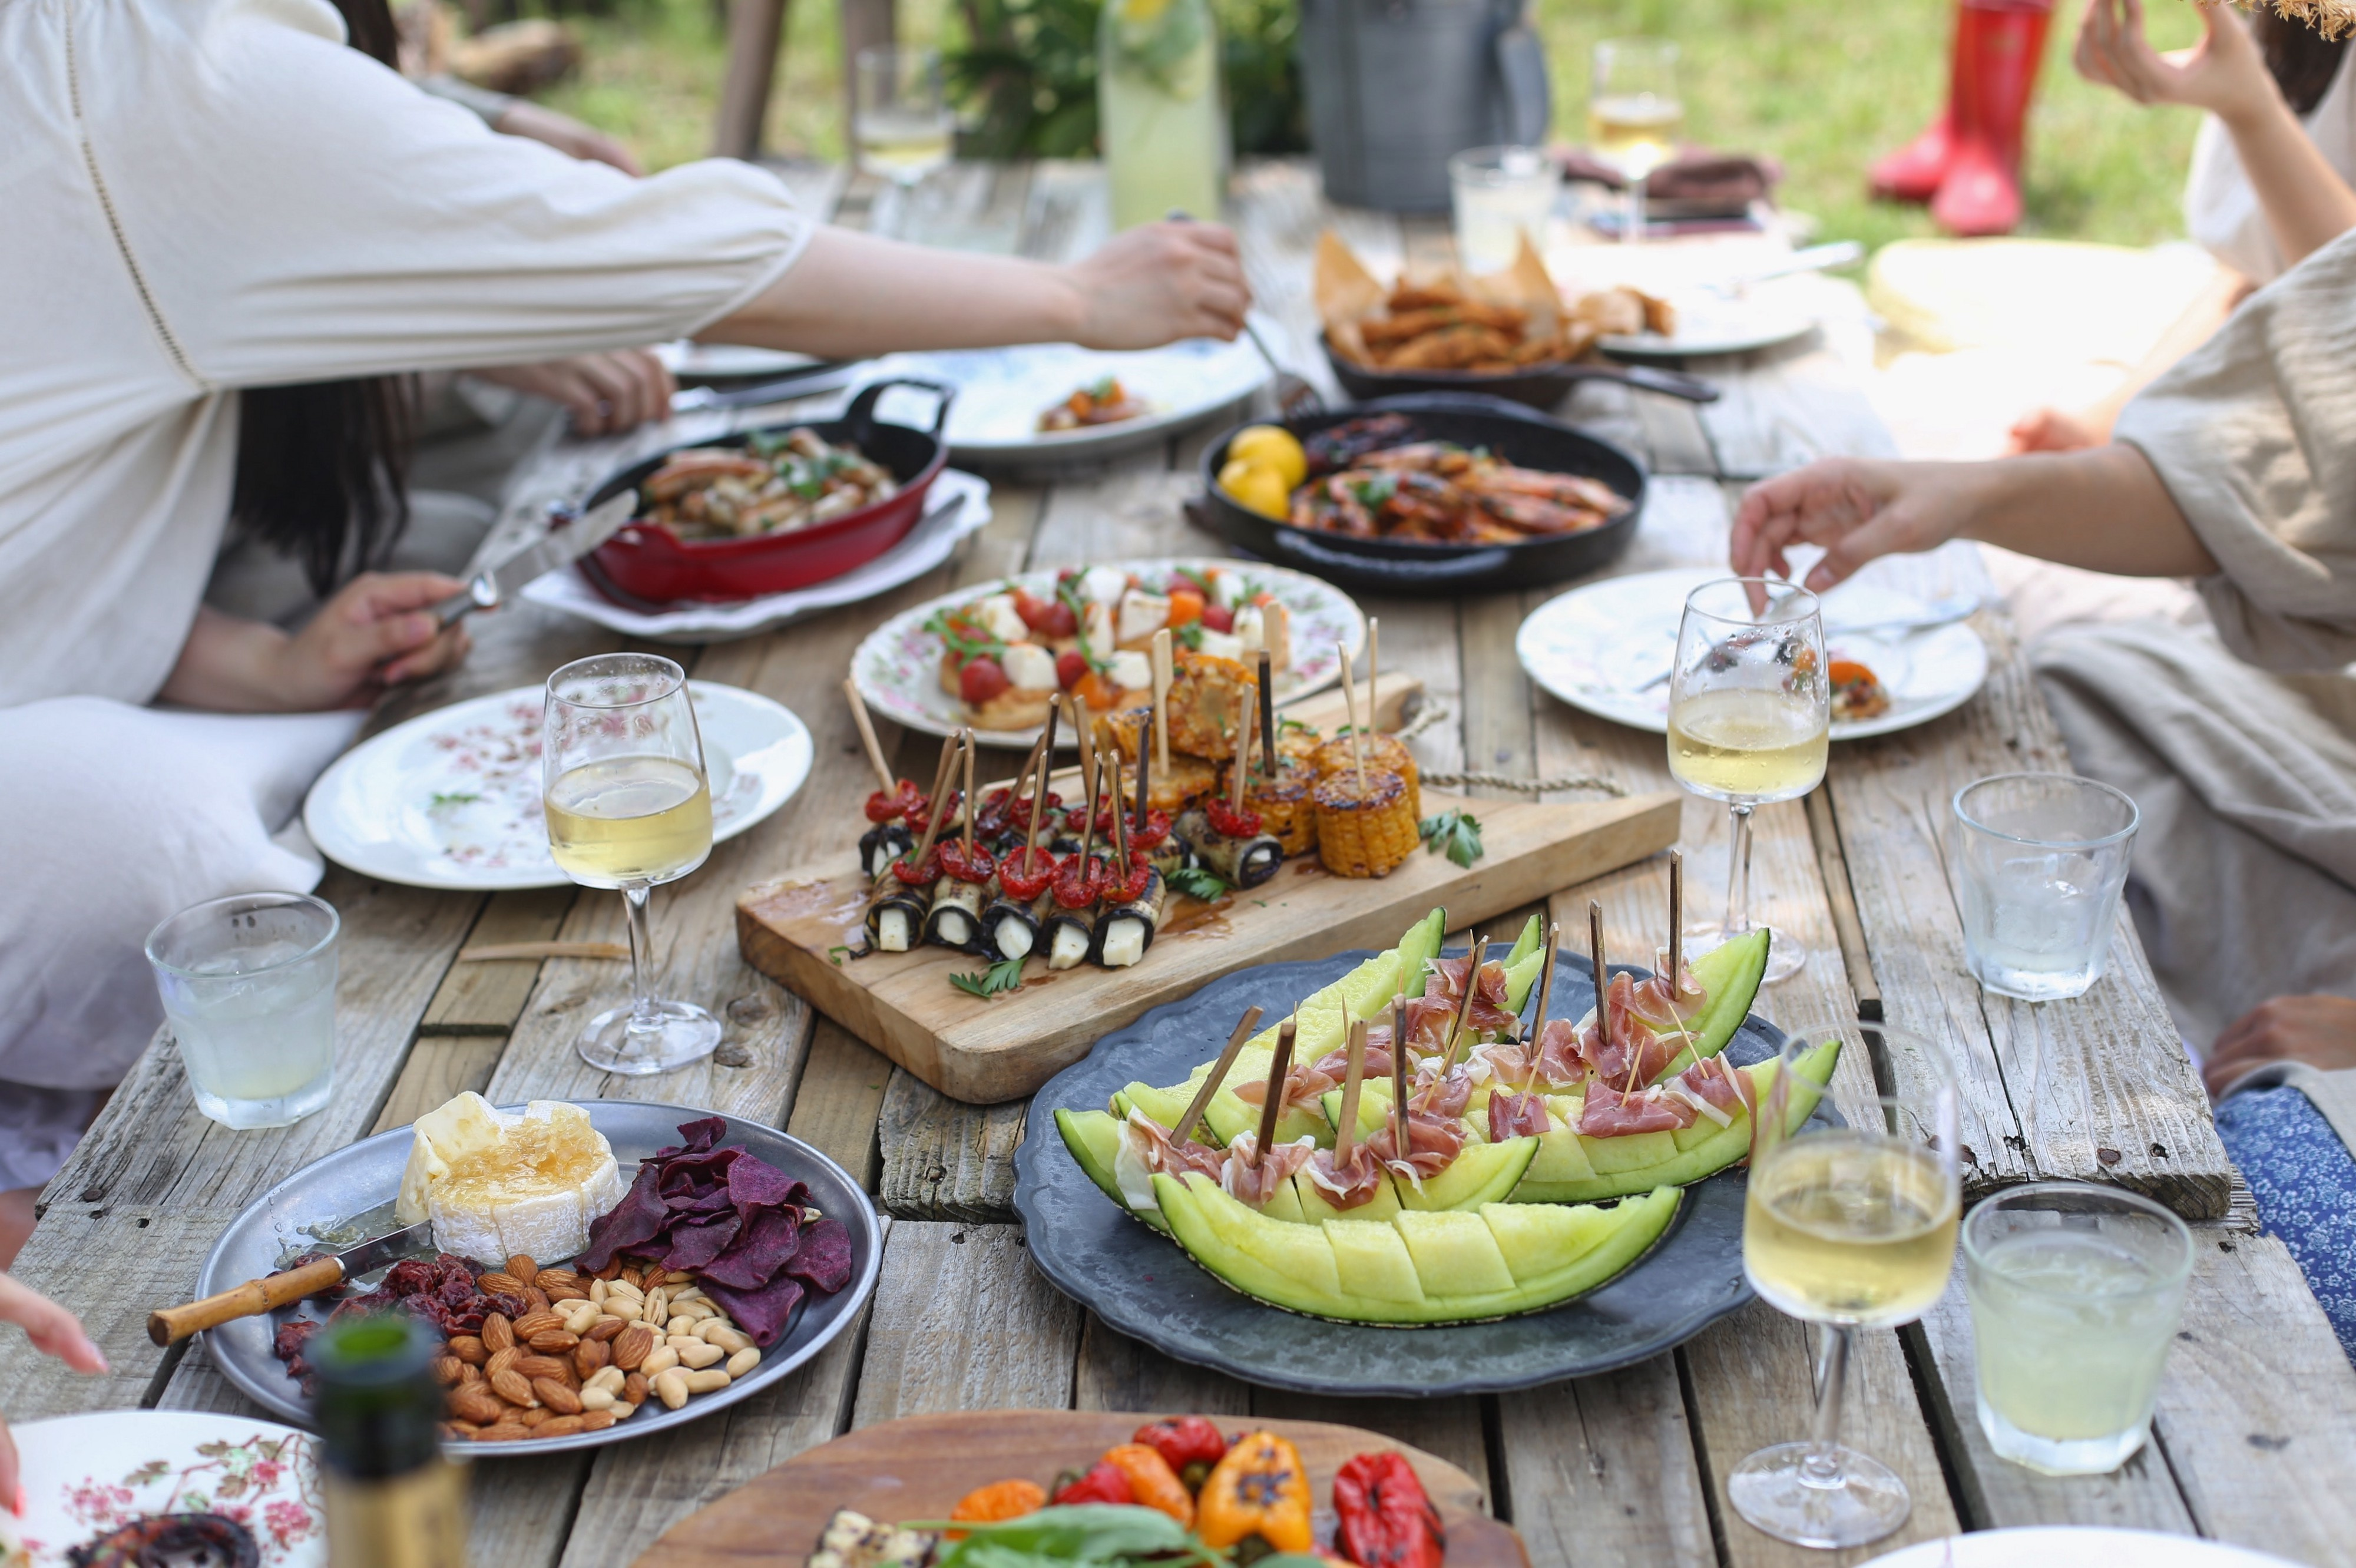 Table of food—Allergy Angst at Parties and Gatherings—Amy Marley